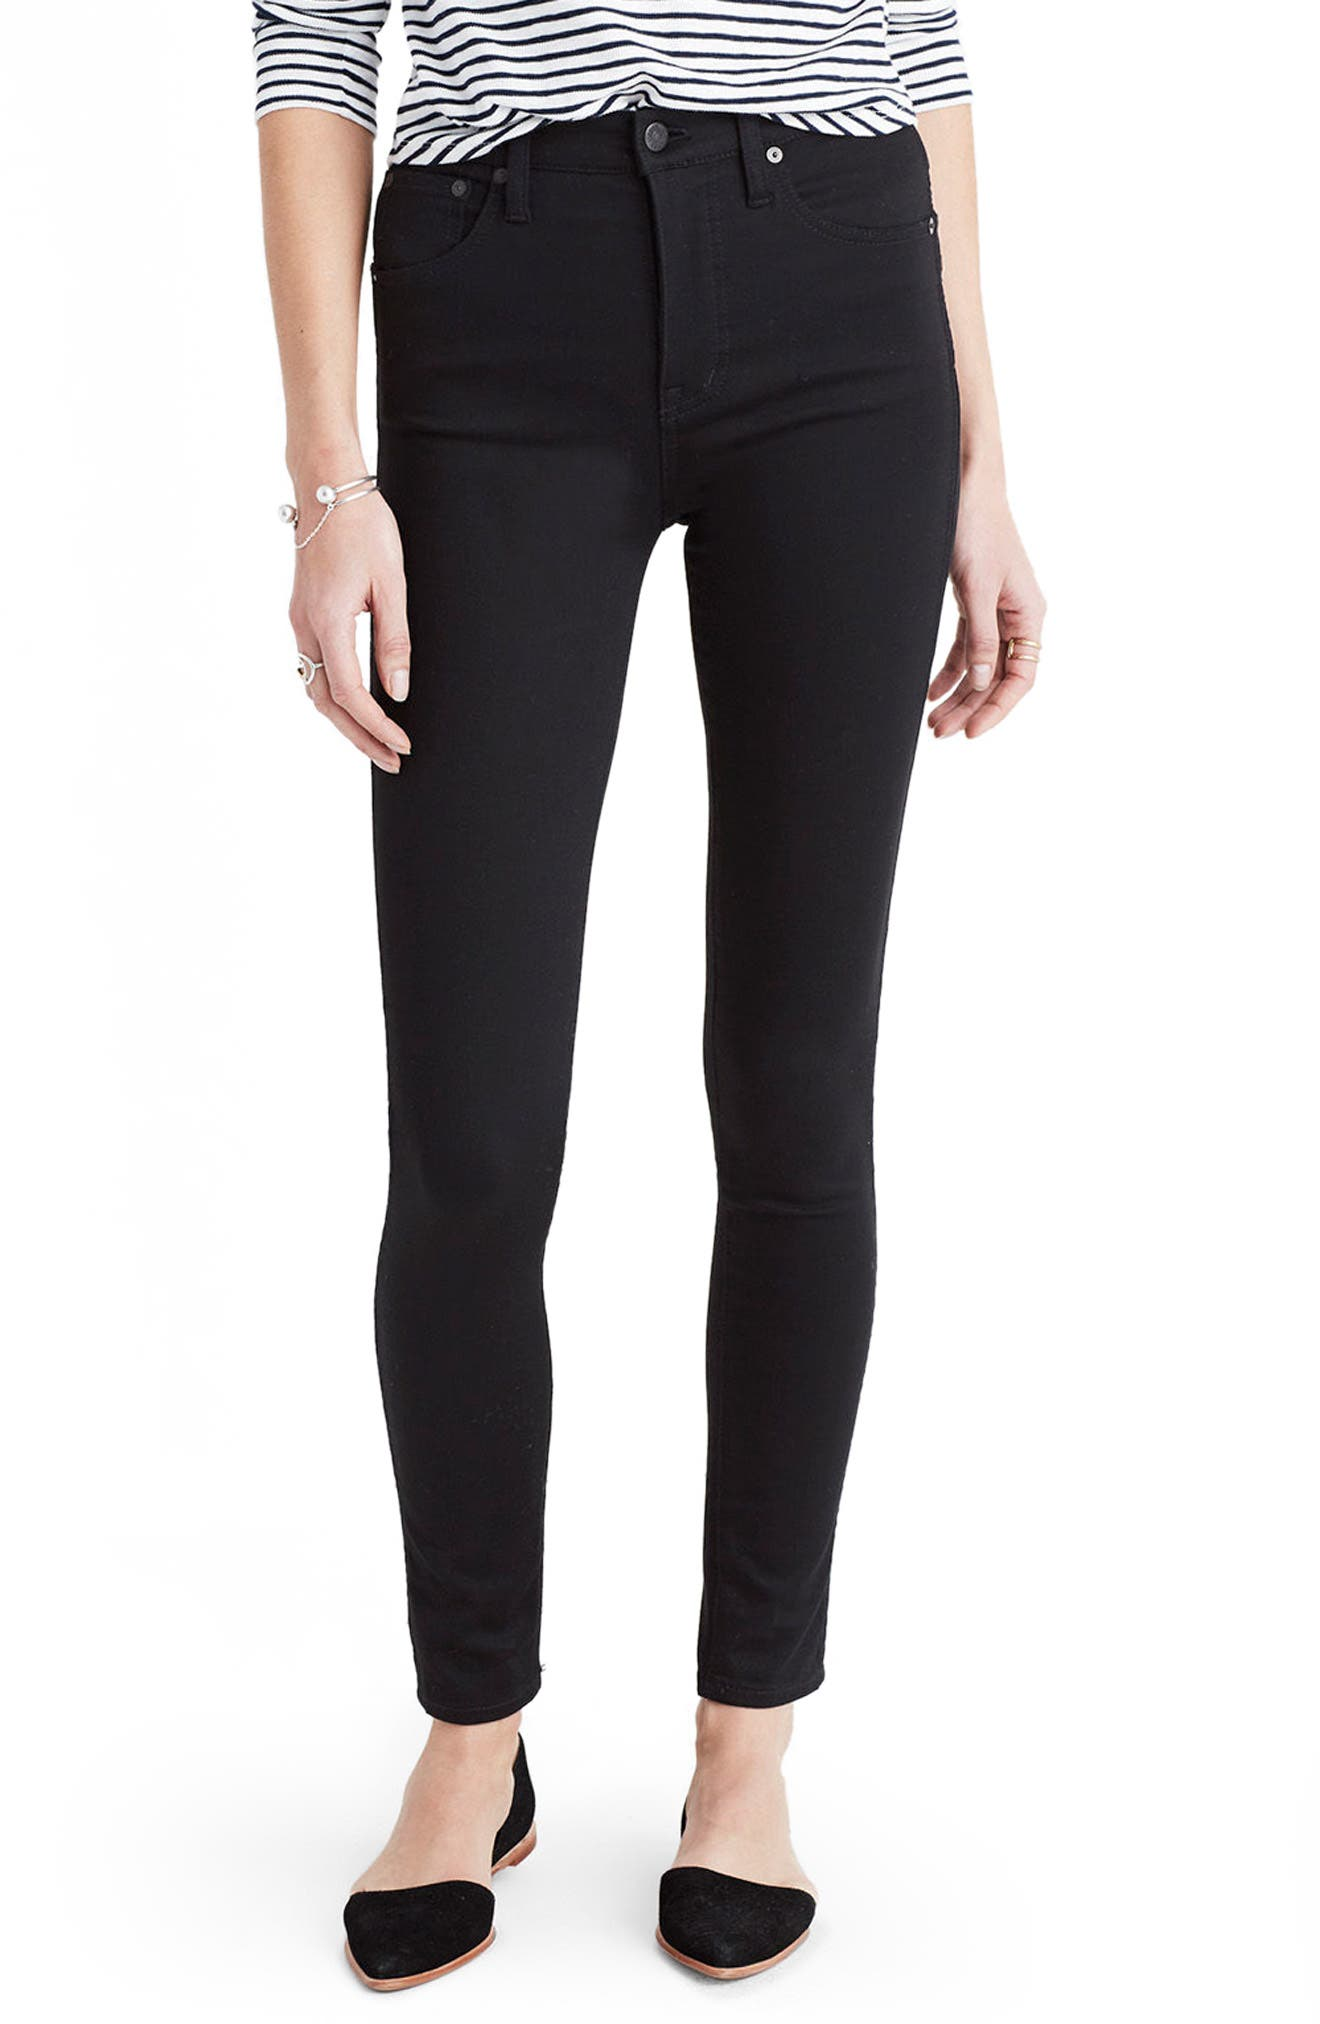 10-Inch High Waist Skinny Jeans,                             Main thumbnail 1, color,                             Carbondale